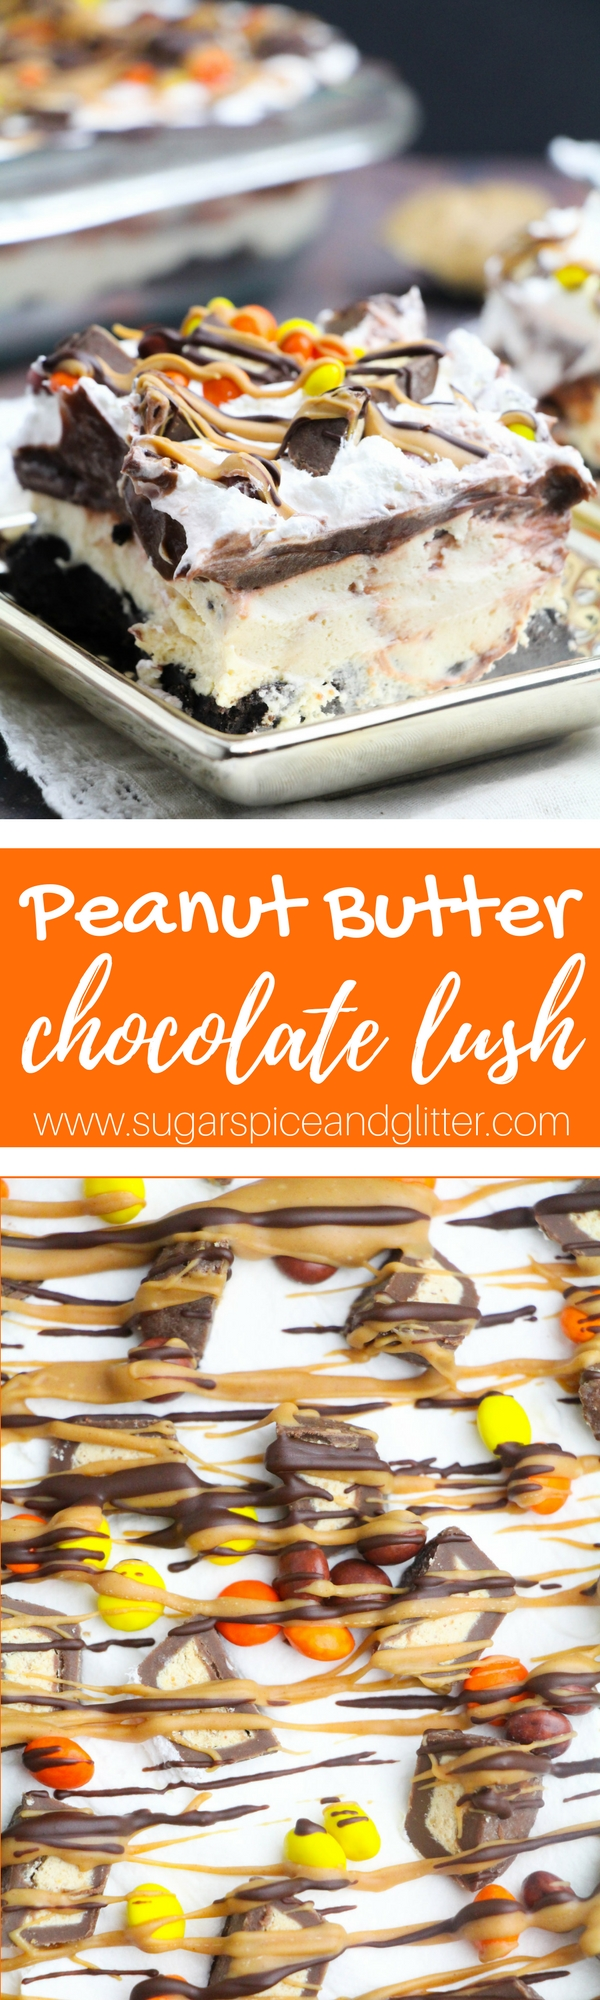 Peanut Butter Chocolate Lush, the ultimate no bake chocolate lasagna recipe for peanut butter-chocolate fans